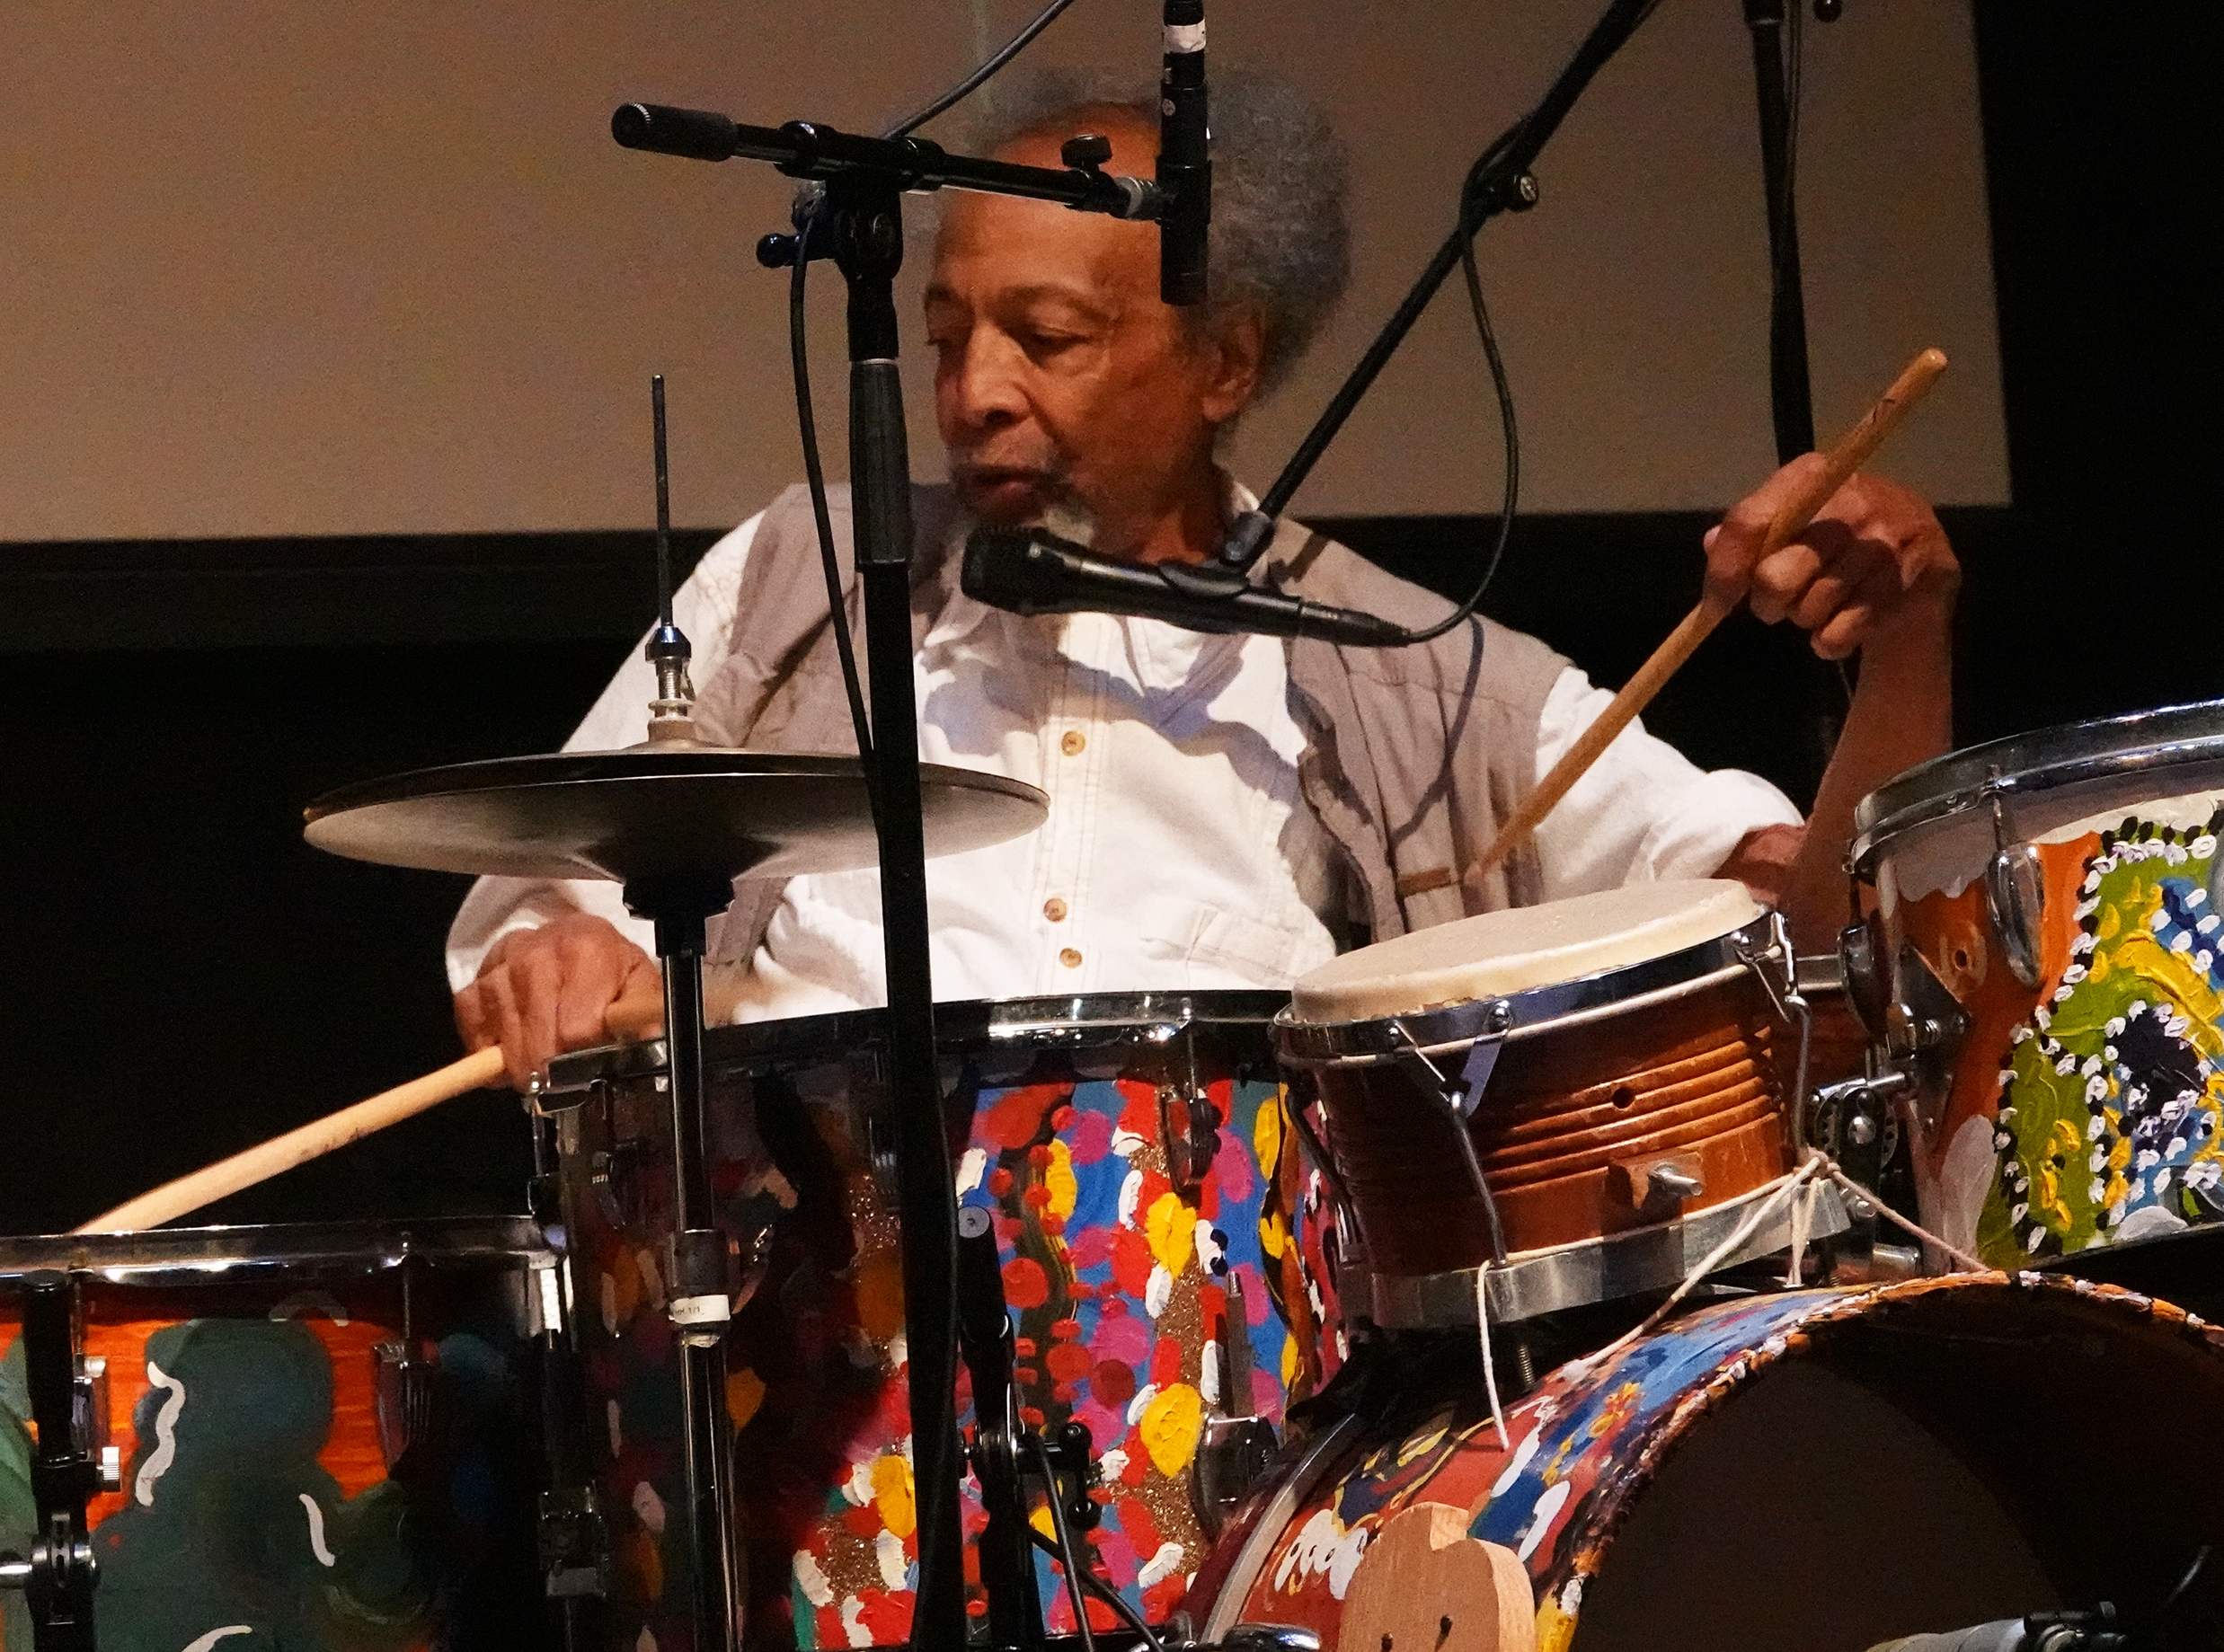 Milford Graves at 24th Annual Vision Festival